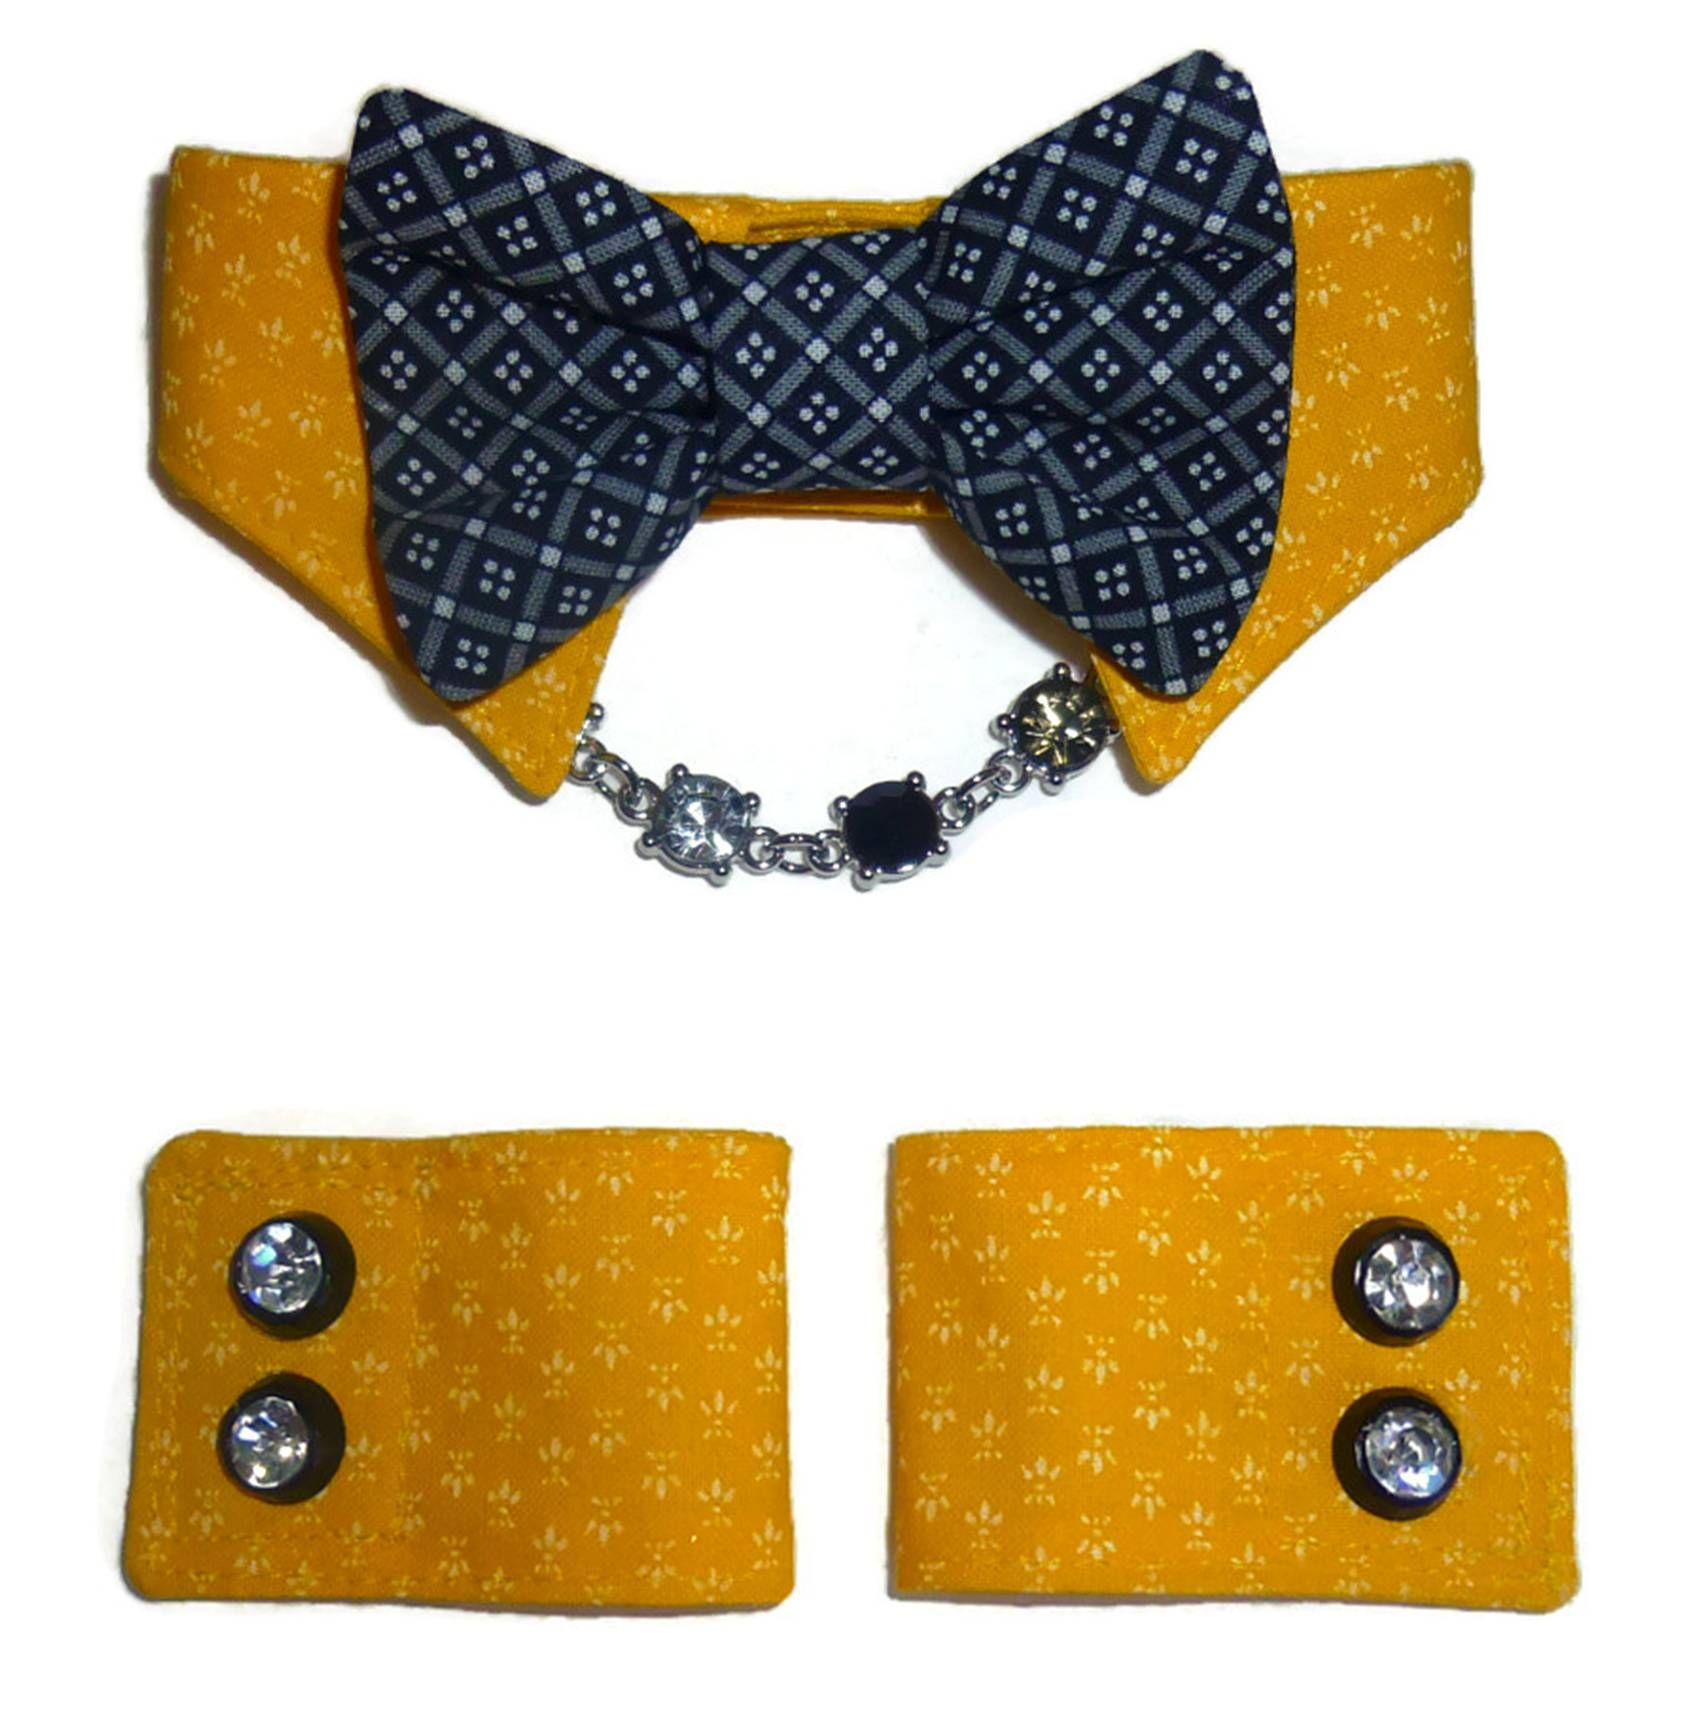 Dog clothes sewing pattern 1527 shirt collar neckwear cuffs for dog clothes sewing pattern 1527 shirt collar neckwear cuffs for the little dog 825 jeuxipadfo Gallery